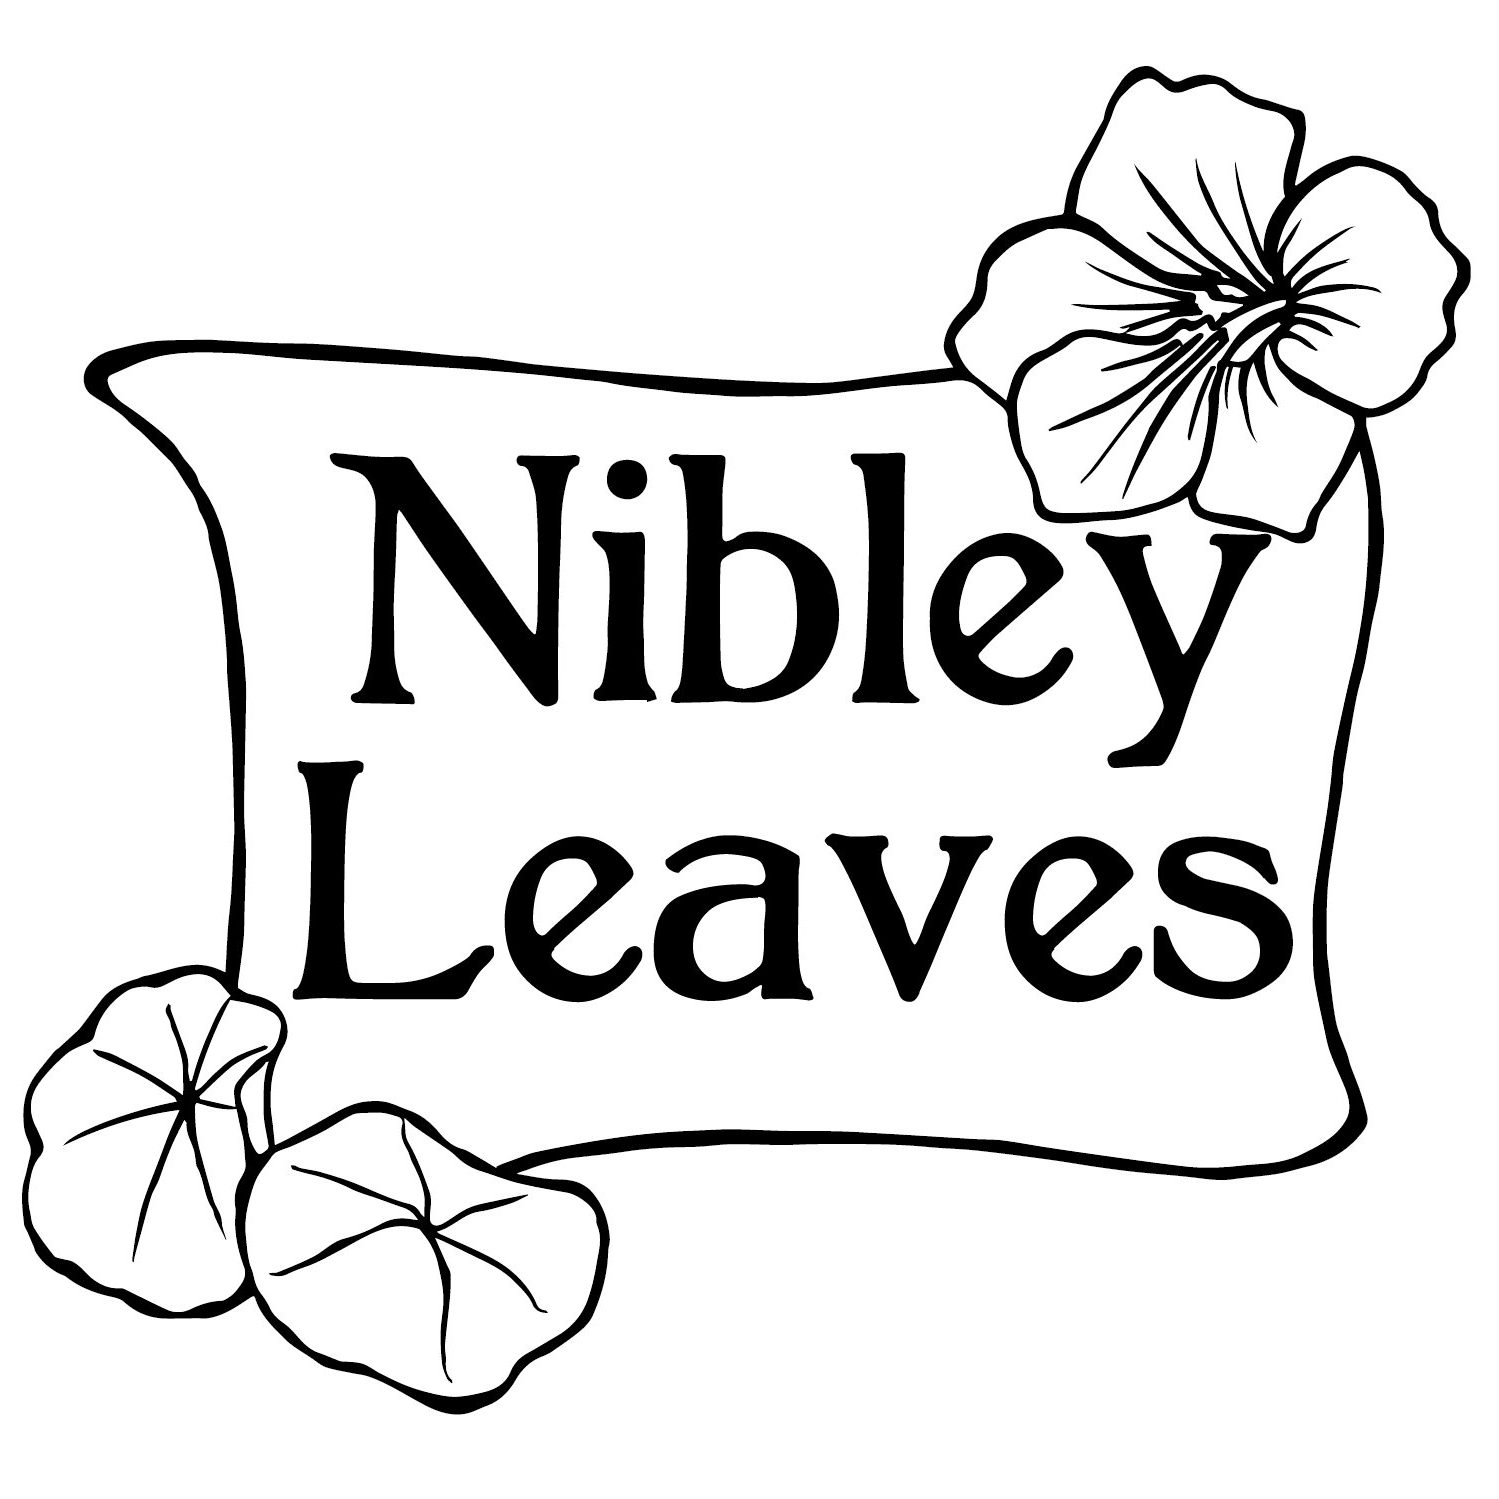 Nibley Leaves